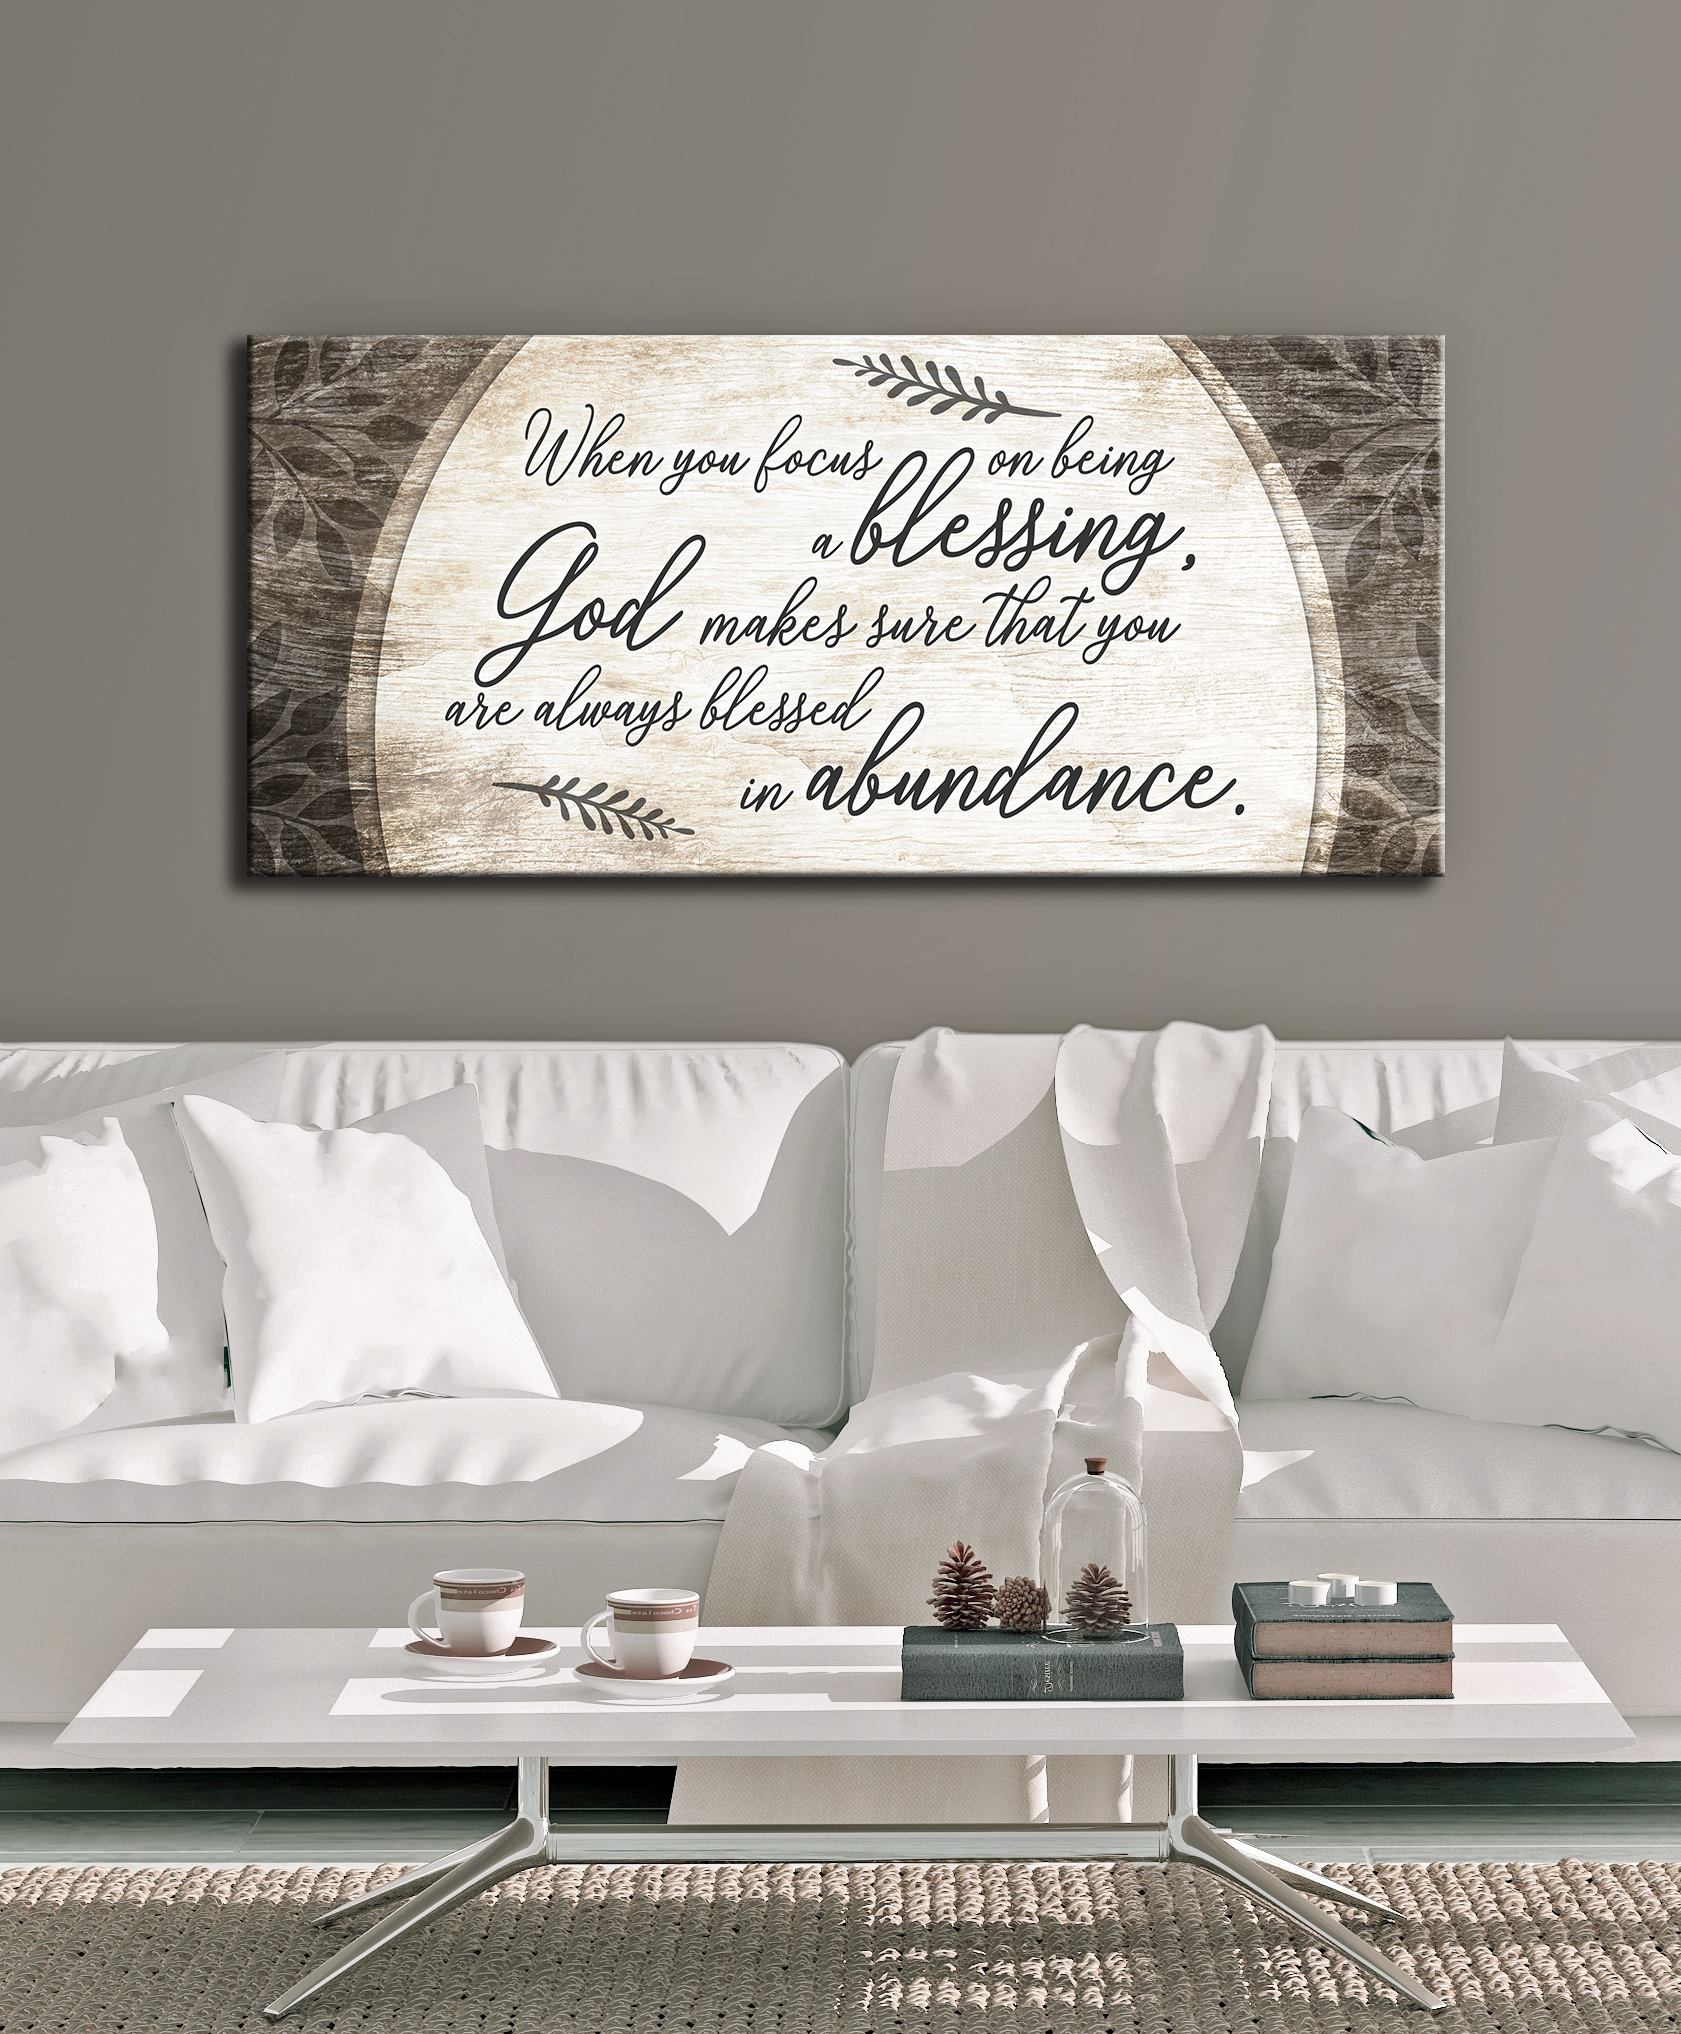 Christian Wall Art: When You Focus On Being A Blessing (Wood Frame Ready To Hang)